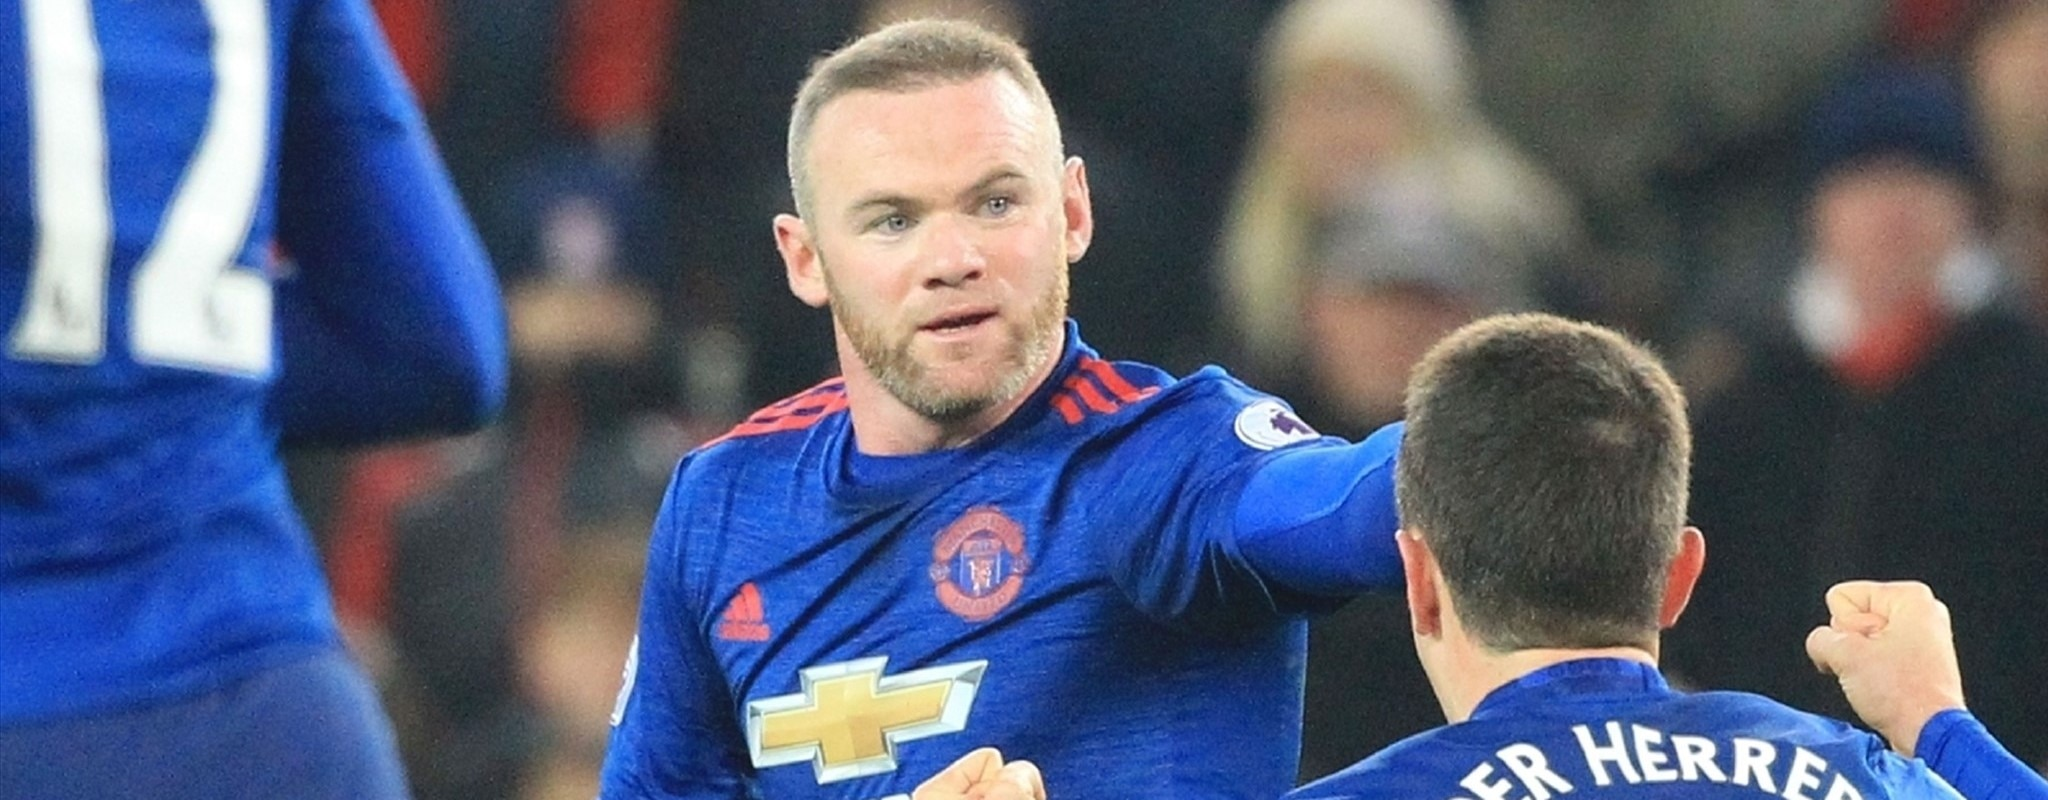 Rooney becomes Manchester United's all-time top scorer